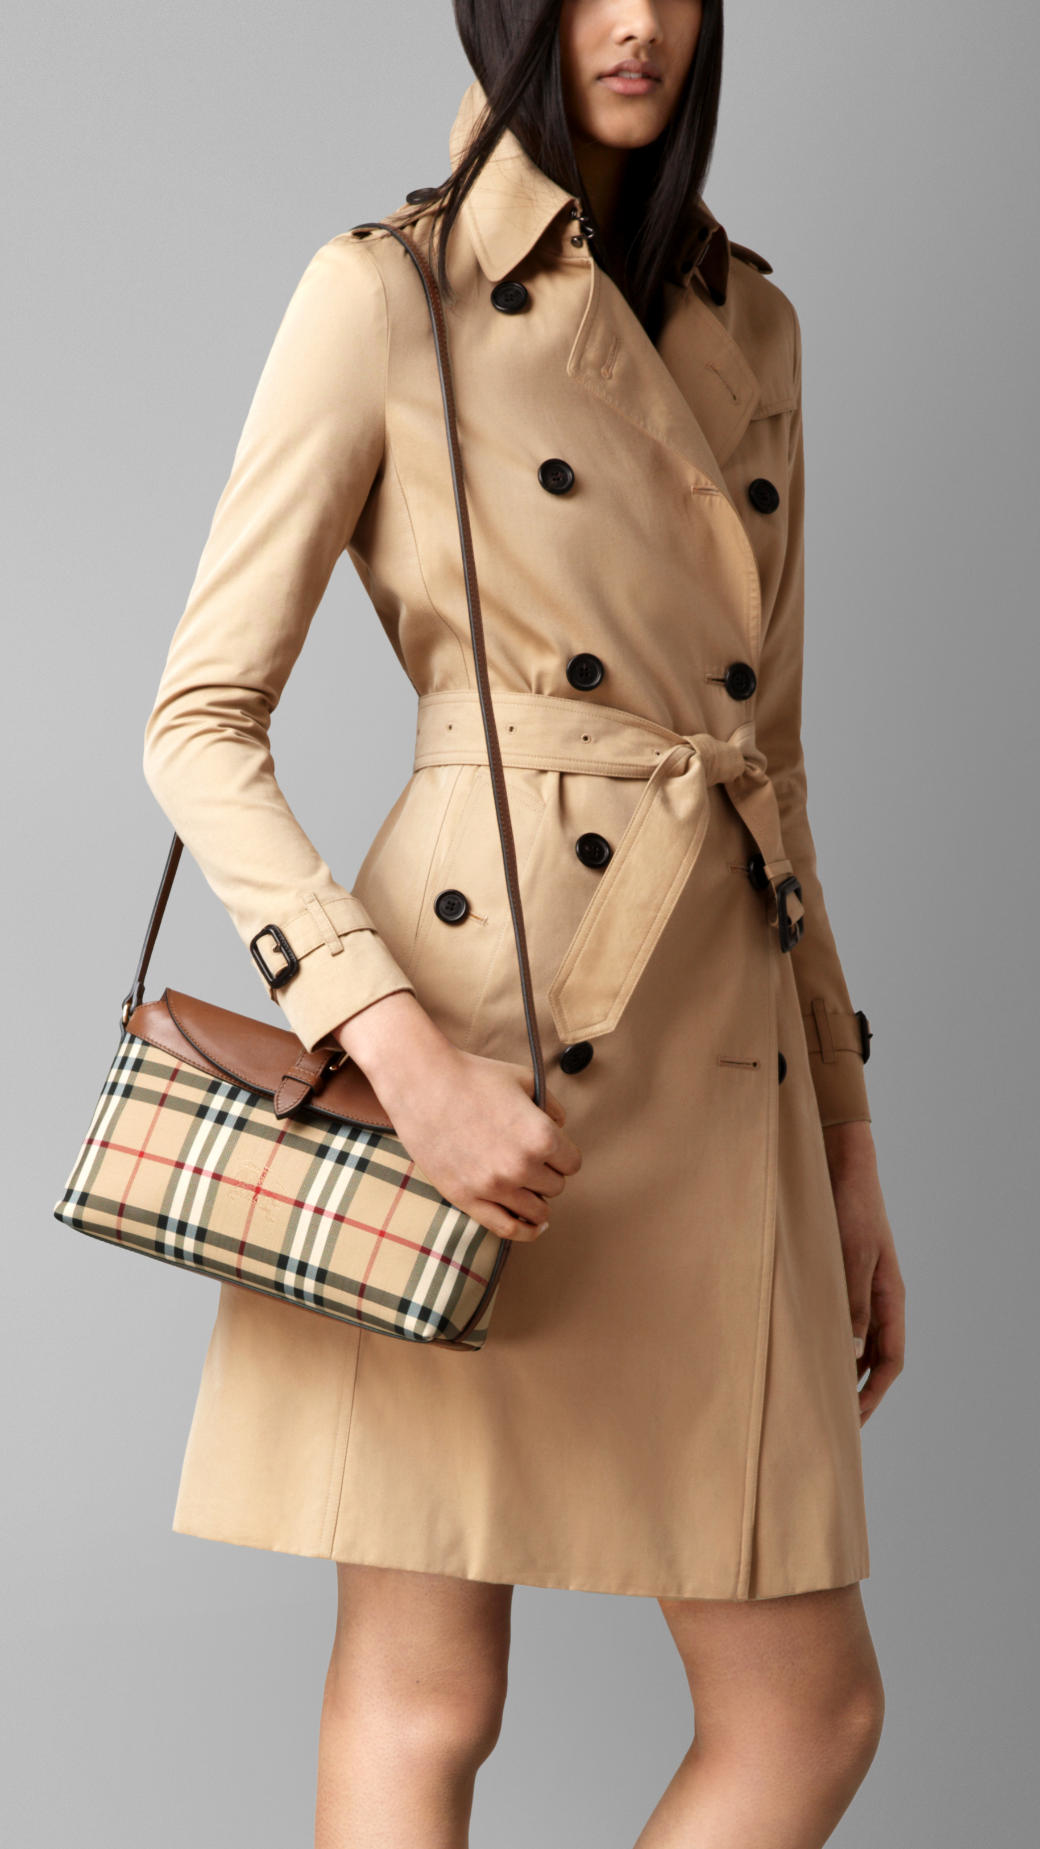 7206bf1d0405 Lyst - Burberry Small Horseferry Check Clutch Bag in Natural